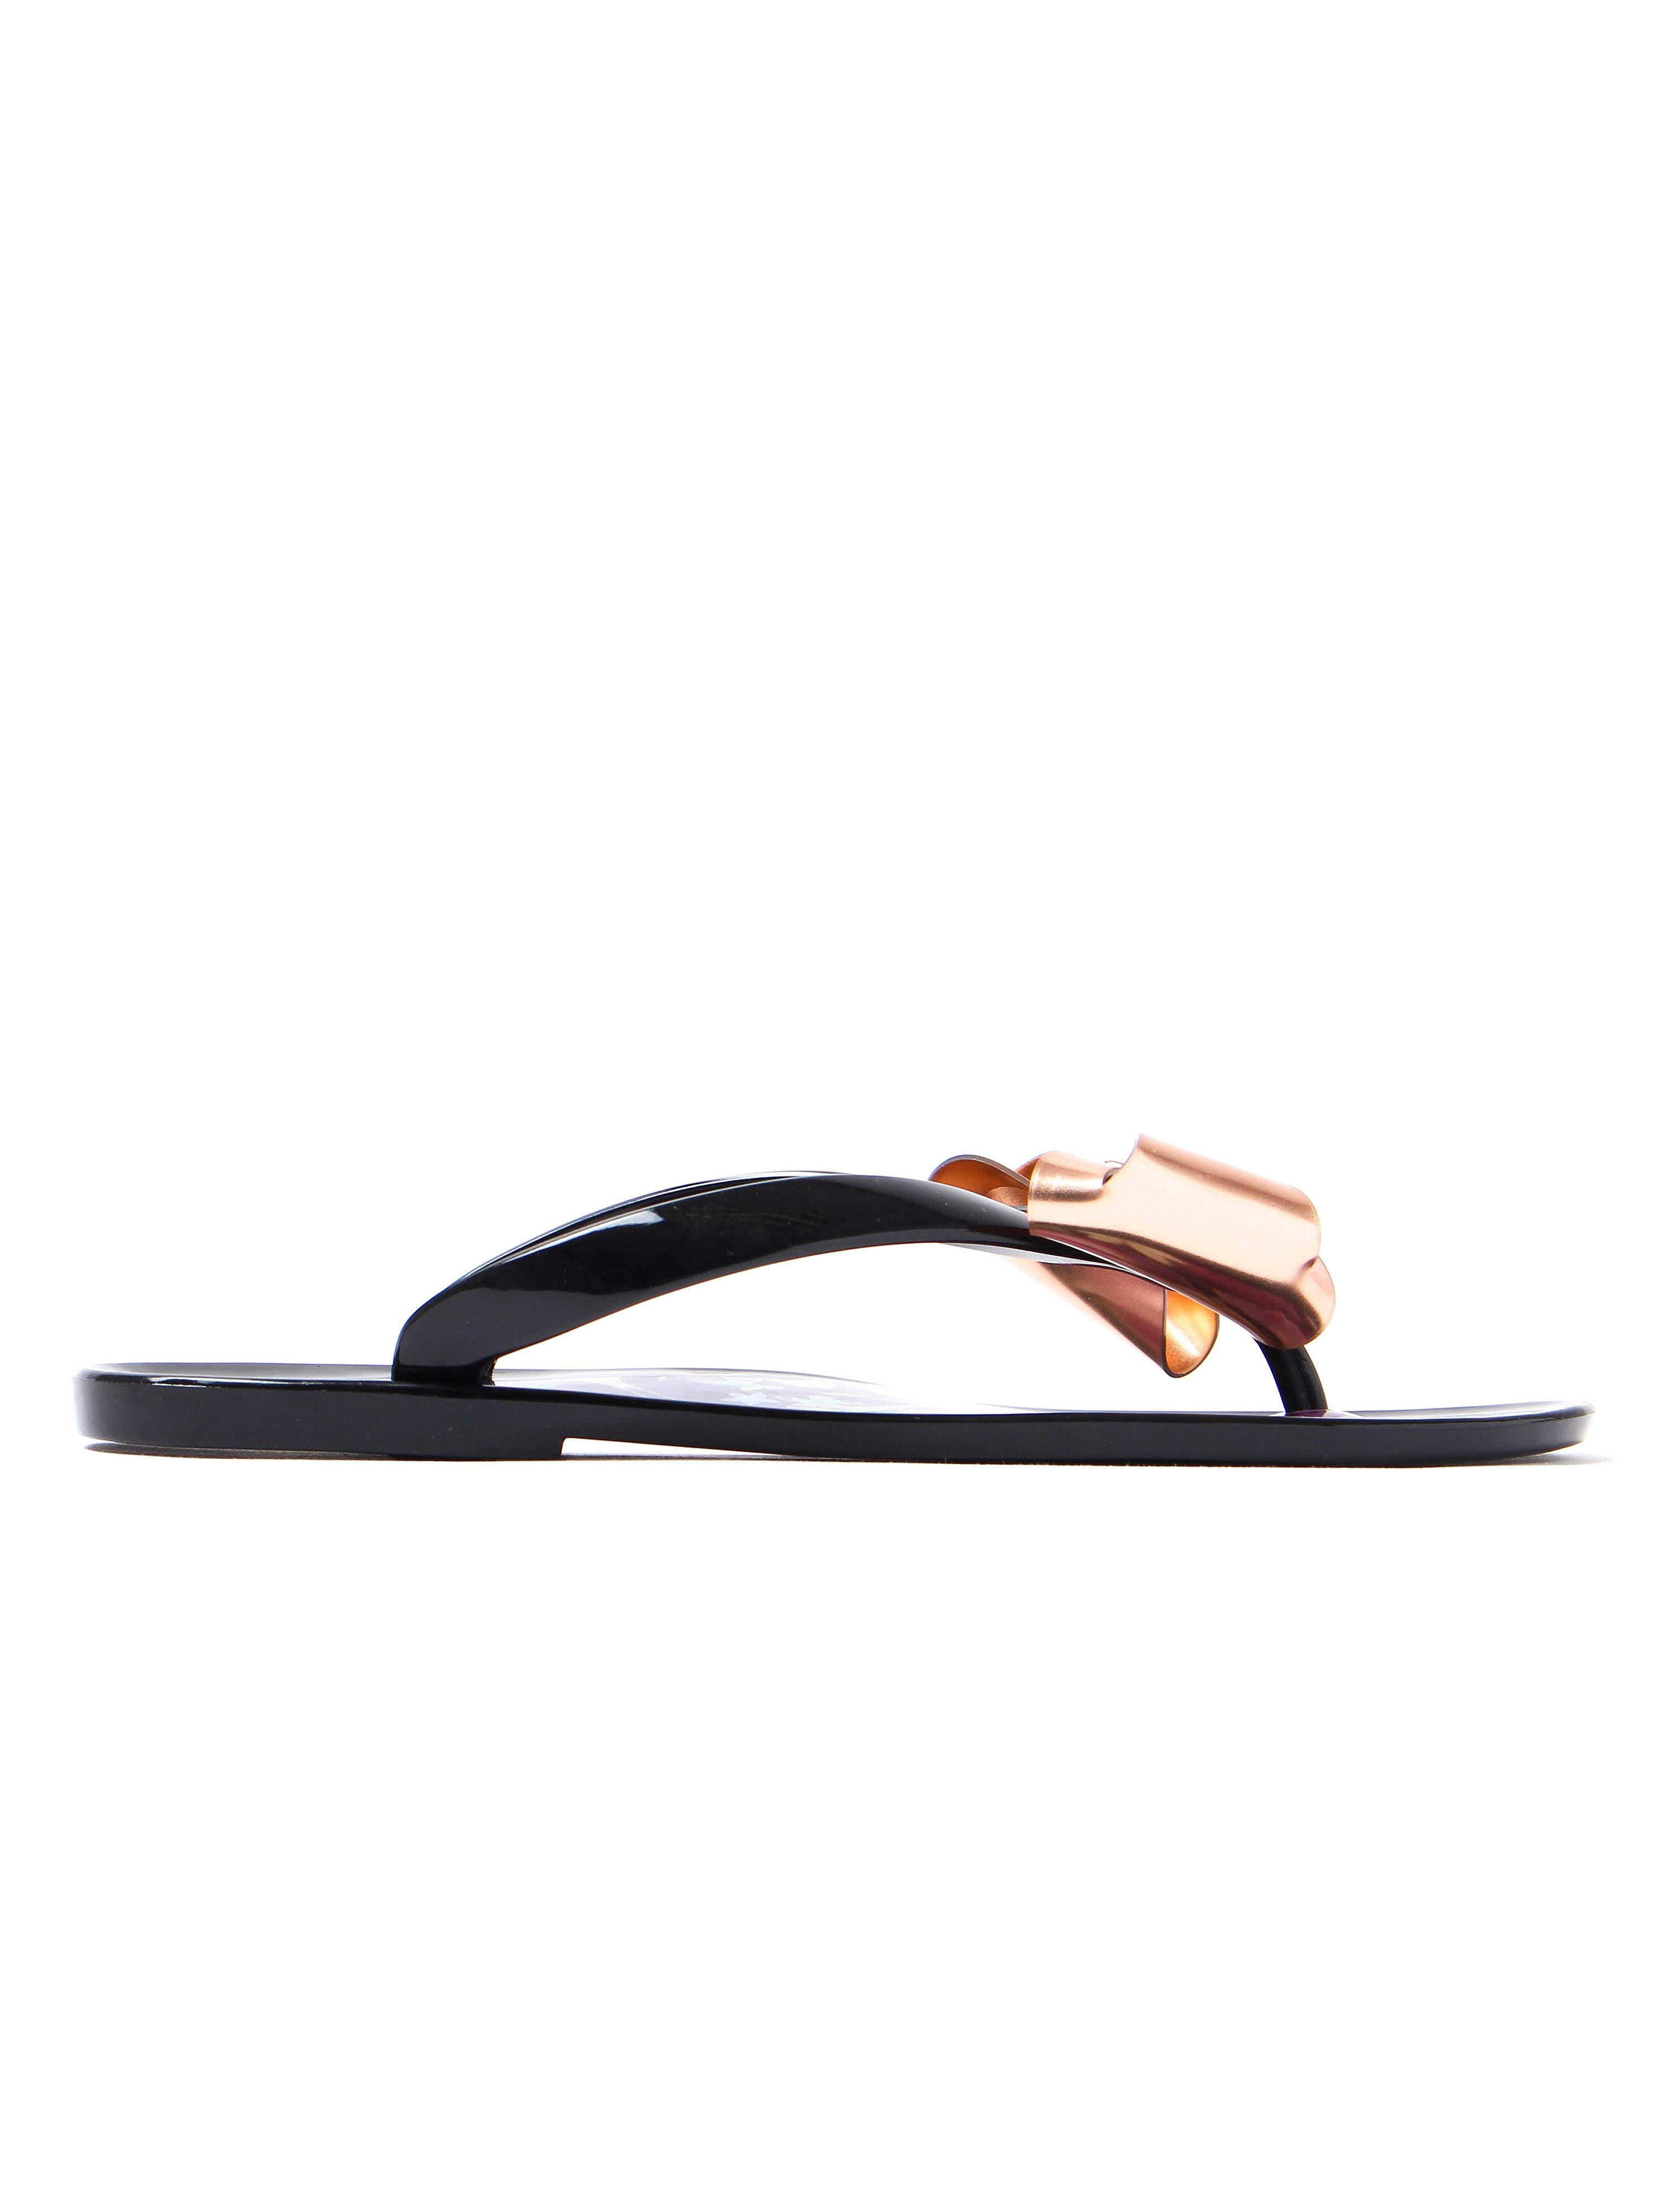 Ted Baker Rueday Oriental Bloom Jelly Bow Flip Flops - Entangled Enchantment Black